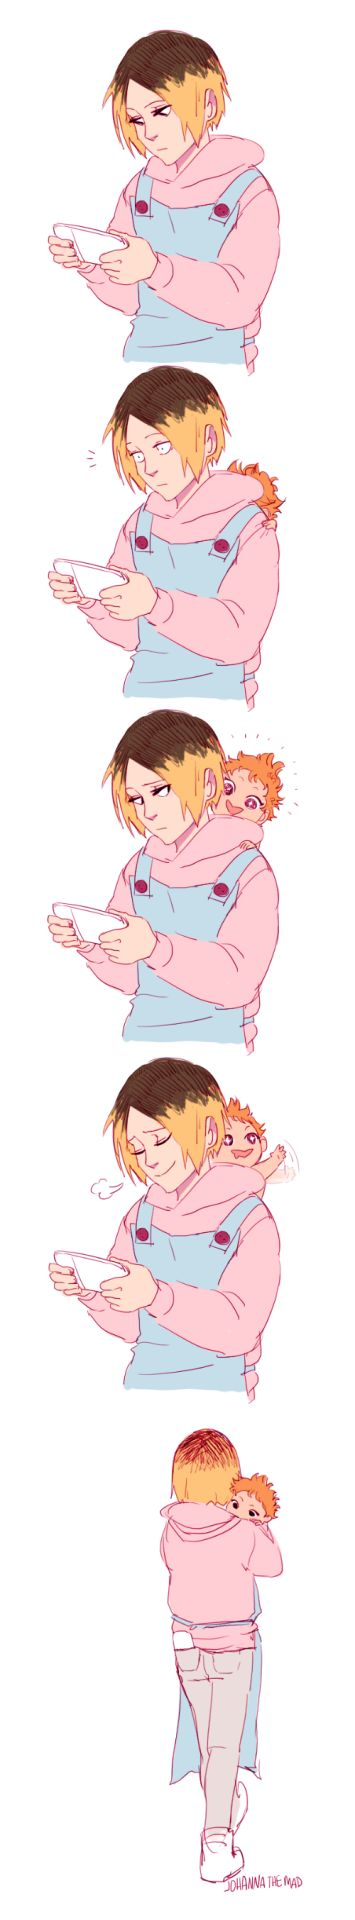 Kenma:(*plays a game*) Kenmas baby:(*inside of hoodie*) Kenma:(what the..?*sigh*let's go) Hinata:(kenma I lost... oh I found the baby  hehe.?) Kenma:(*kisses* puts the baby to sleep then we can have are own fun?) Hinata:(*speed walks up and puts baby to bed then back down* as you were saying *kisses*) Kenma:(hn ah Hinata~)